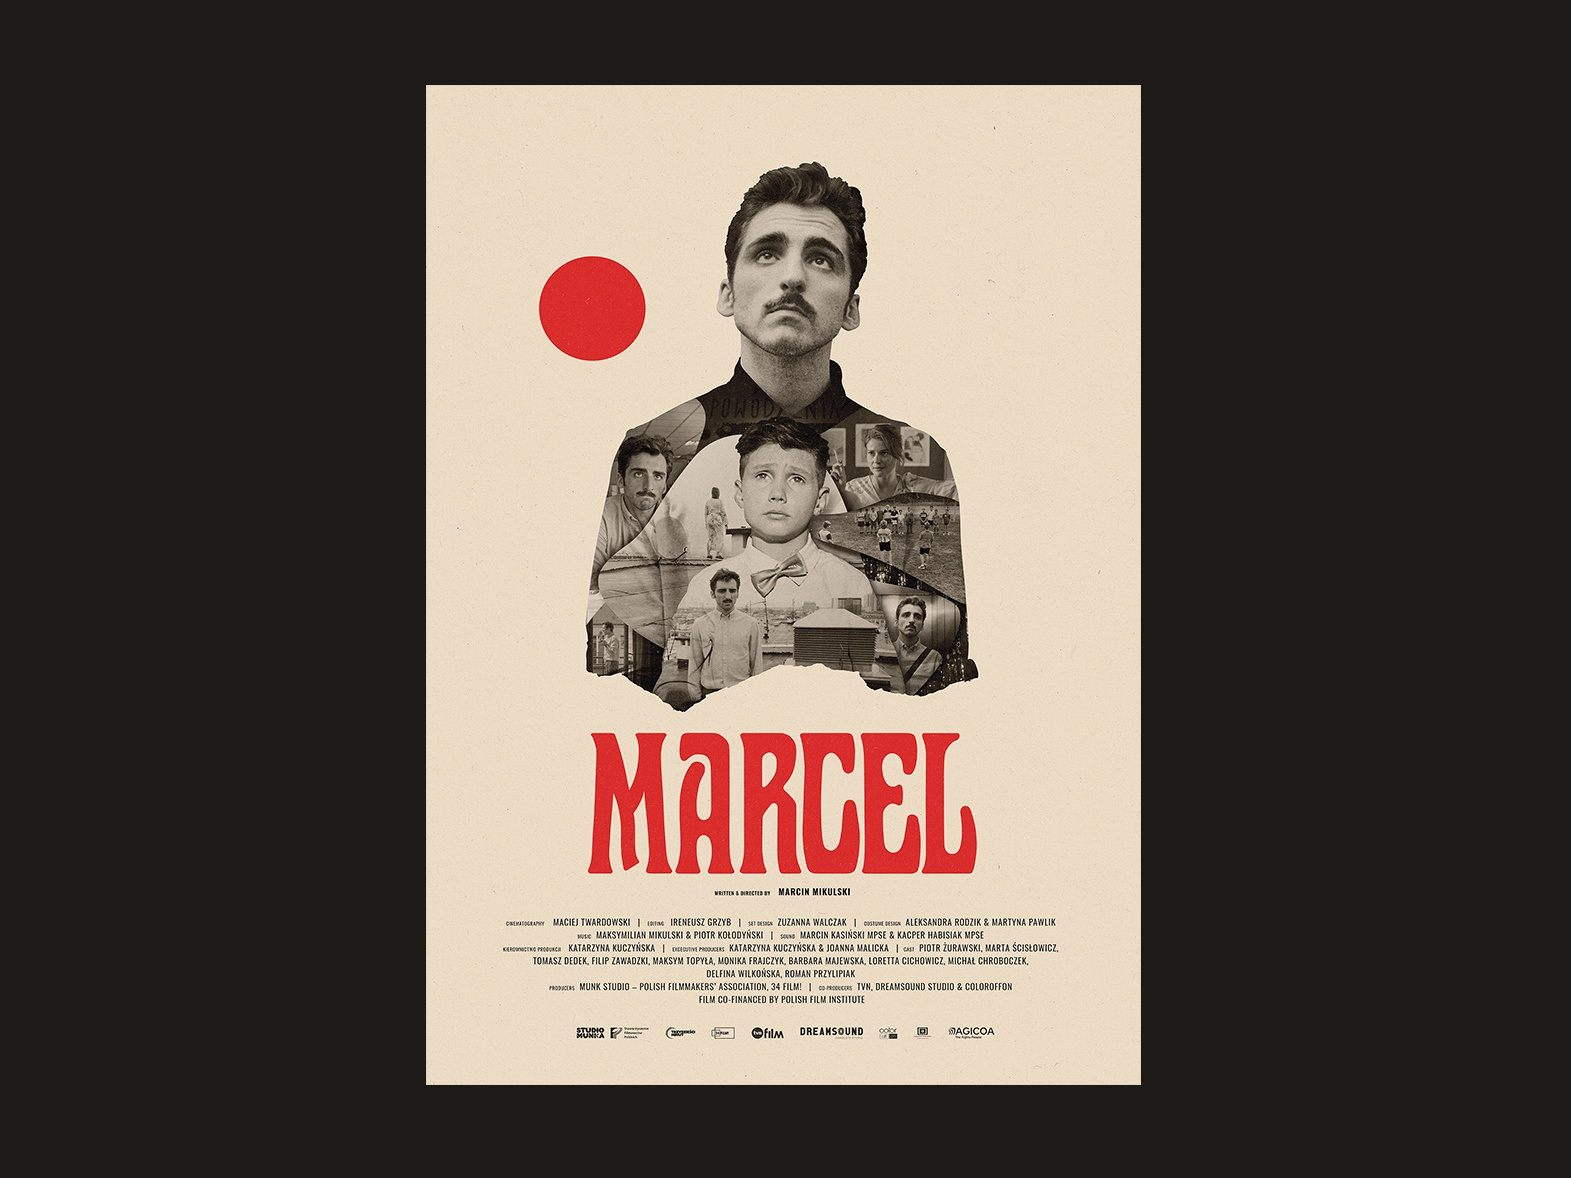 Marcel | movie poster man actor movie poster cinematography movie illustration art poster film collage art actors cutout gigposter illustration collage